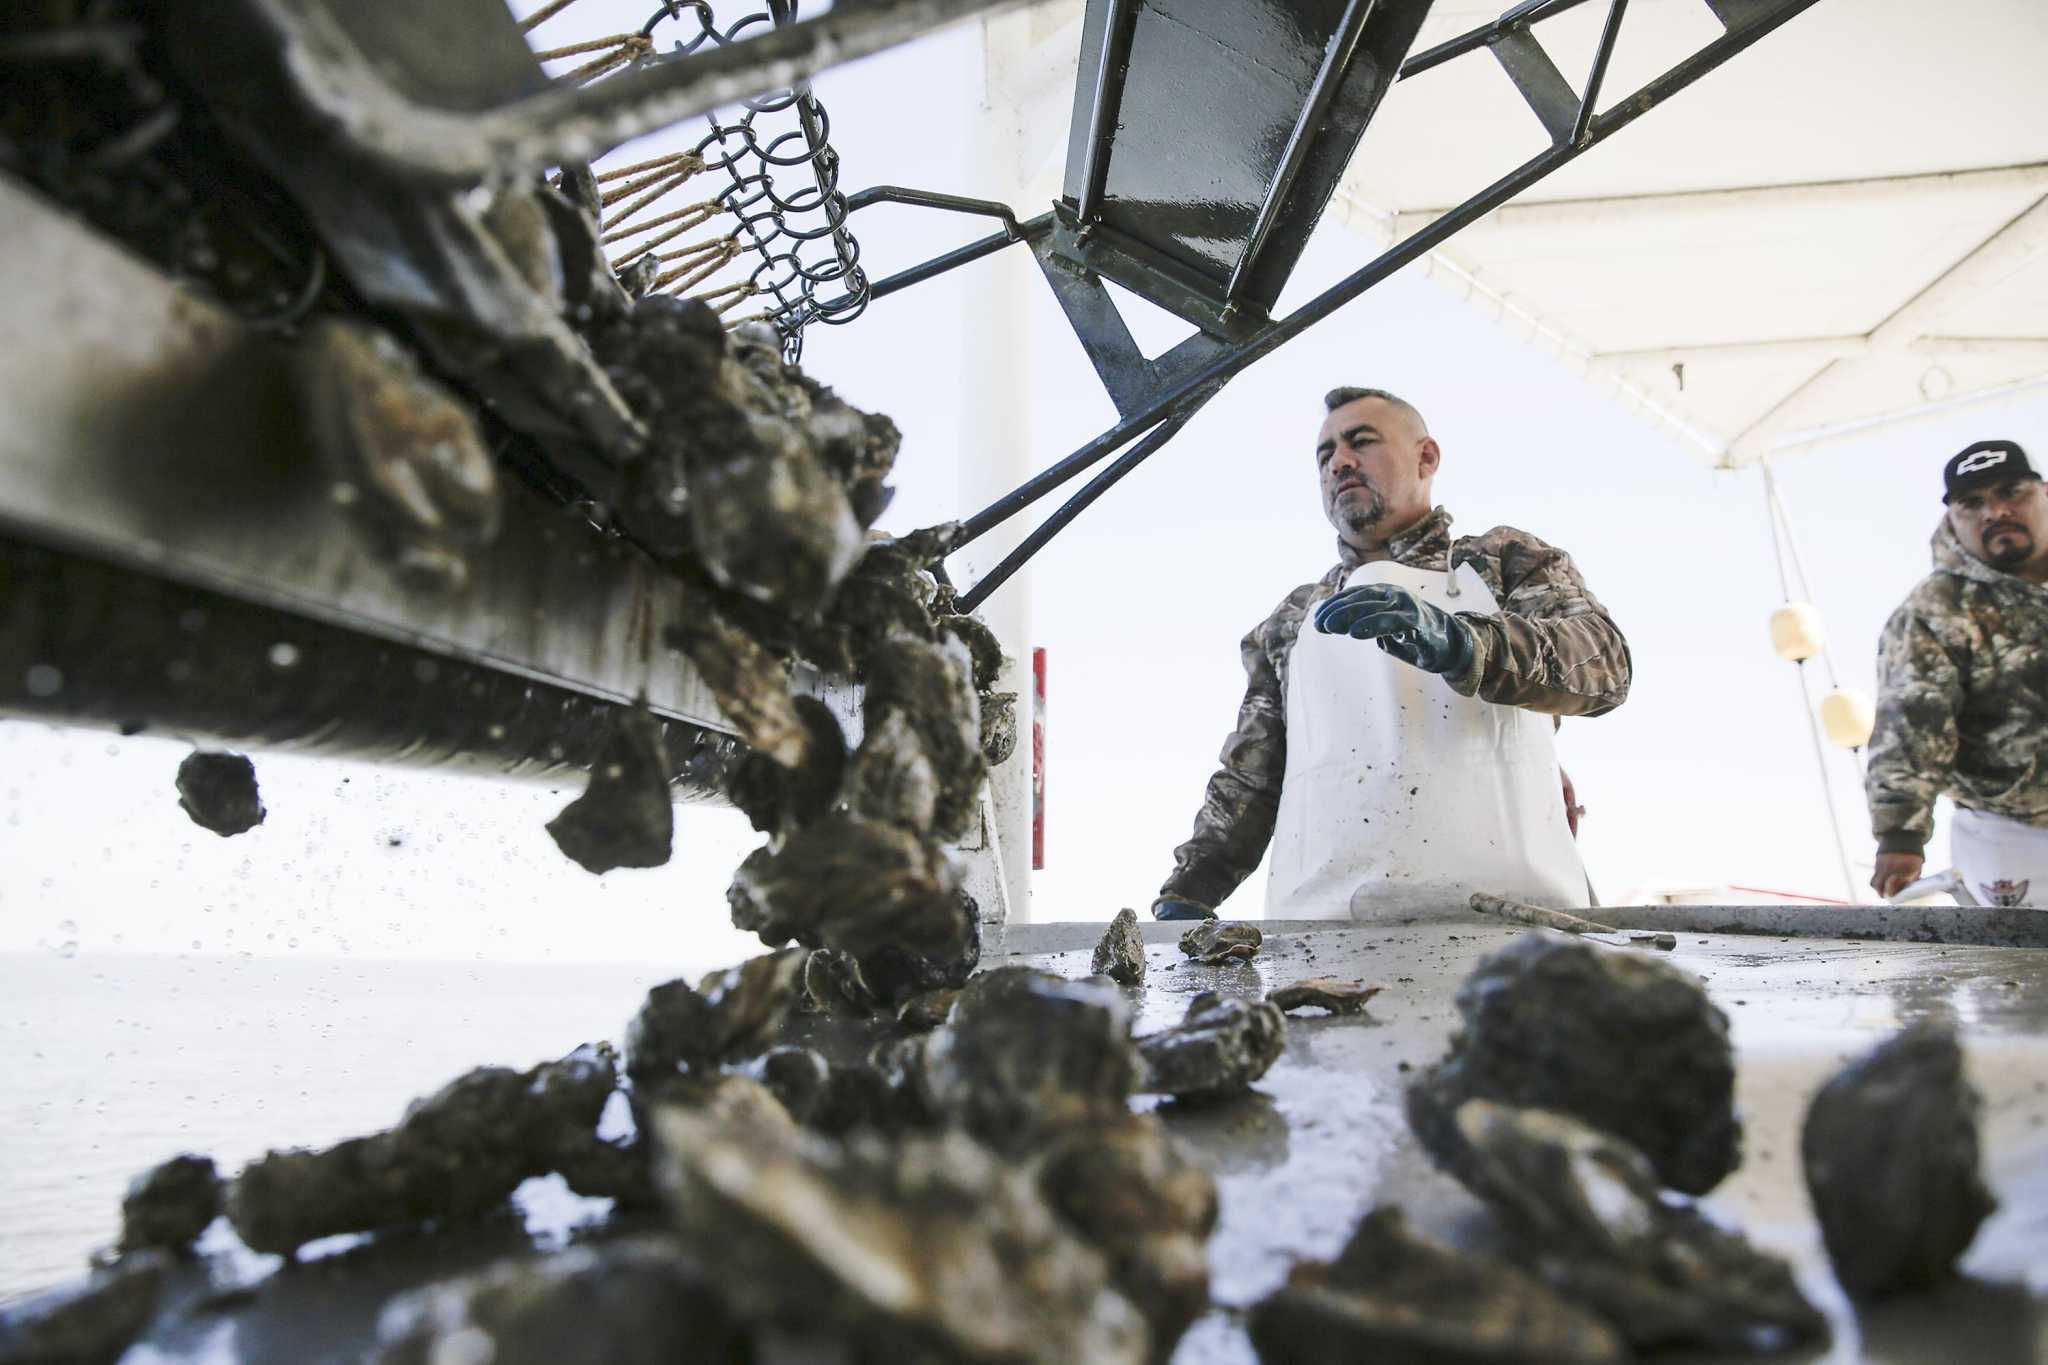 Oysters in Galveston Bay are on the rebound. Will it stay that way?